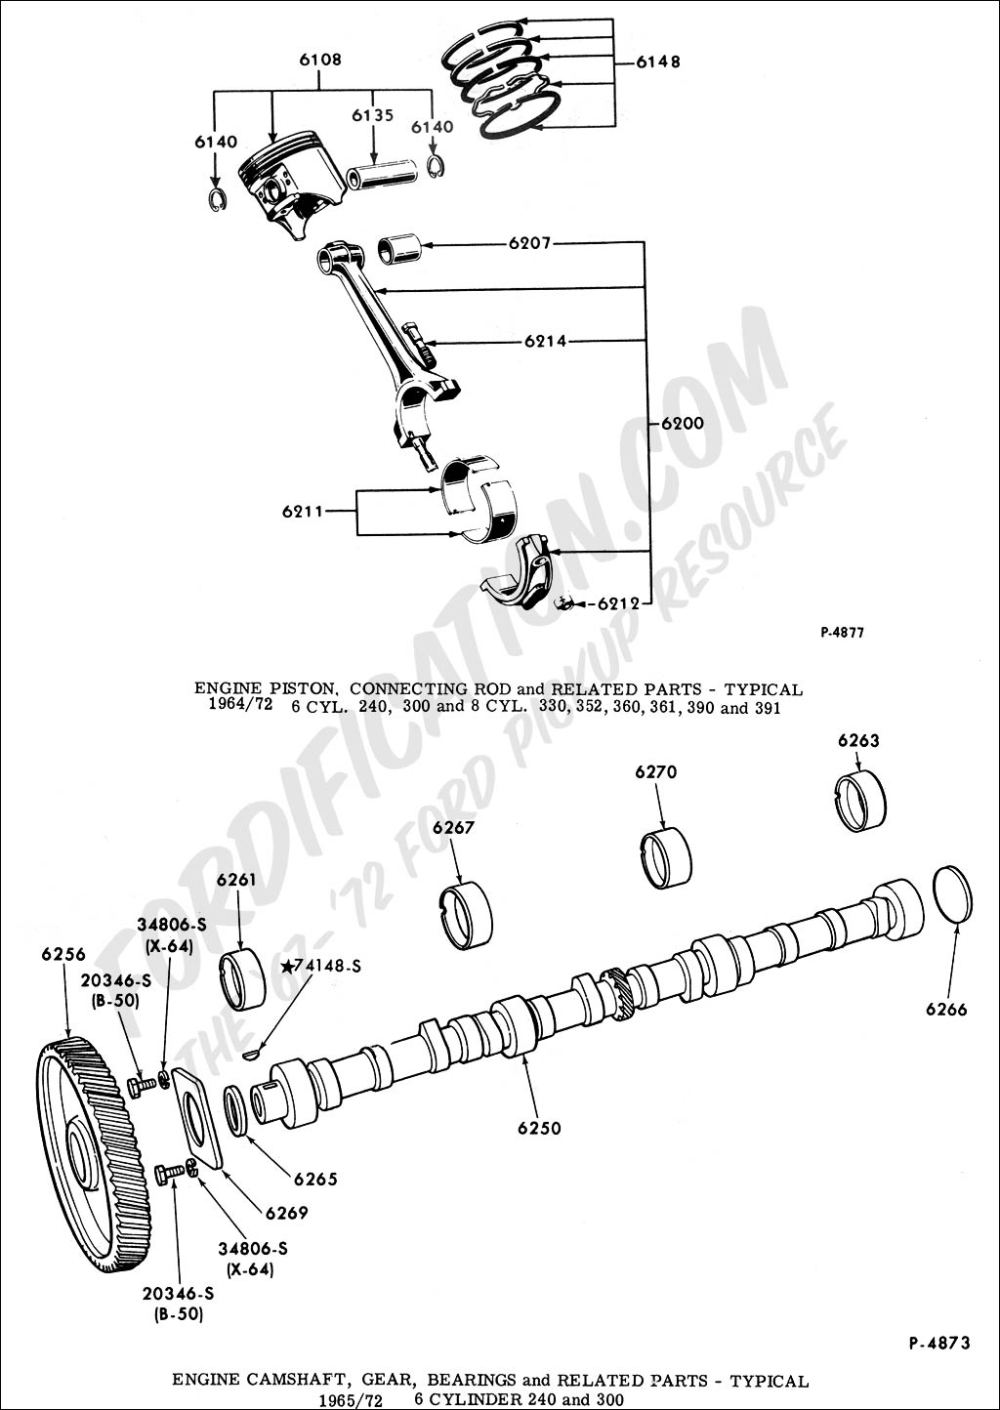 medium resolution of engine piston connecting rod and related parts typical 1964 1972 6 cyl 240 300 and 8 cyl 330 352 360 361 390 and 391